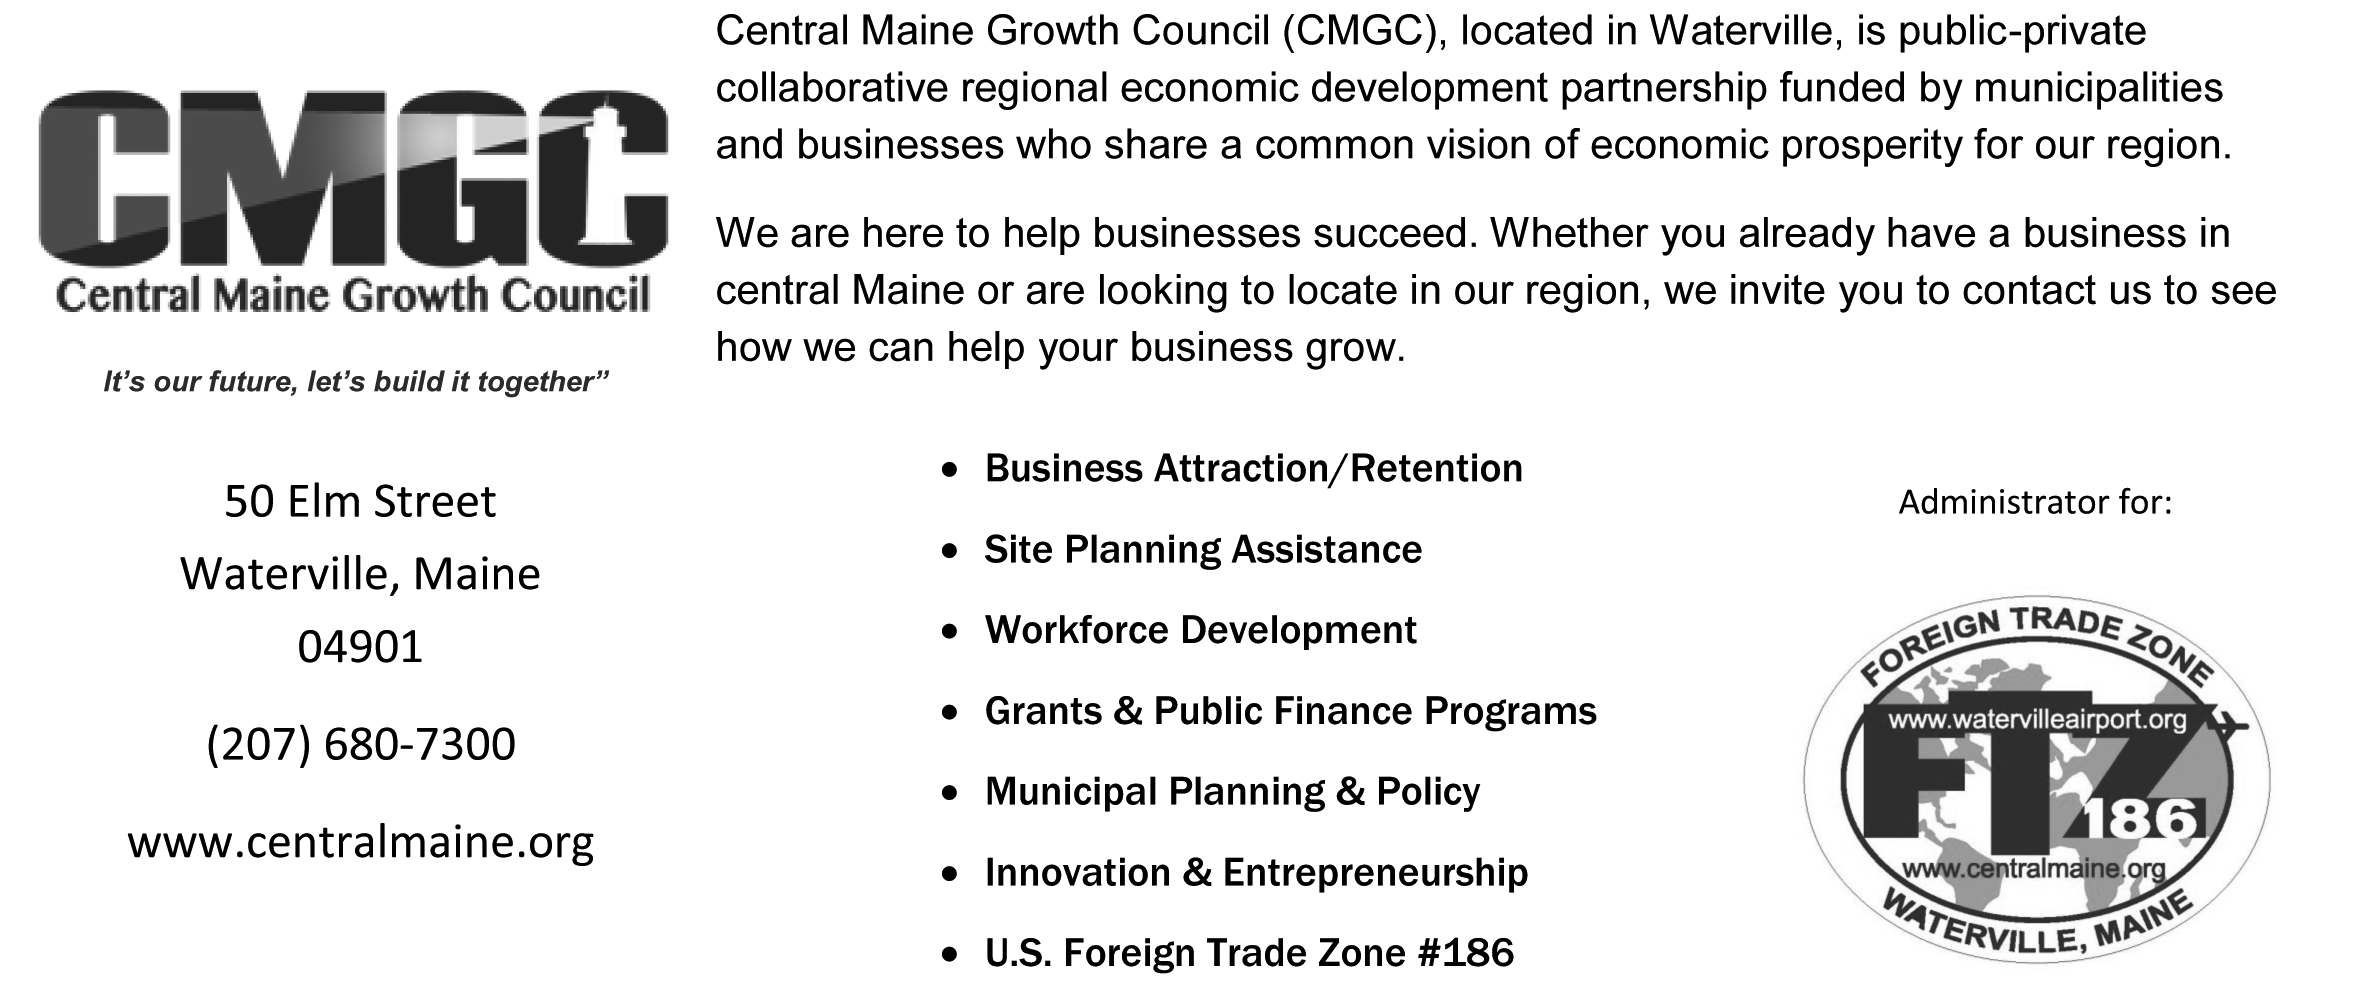 Central Maine Growth Council info